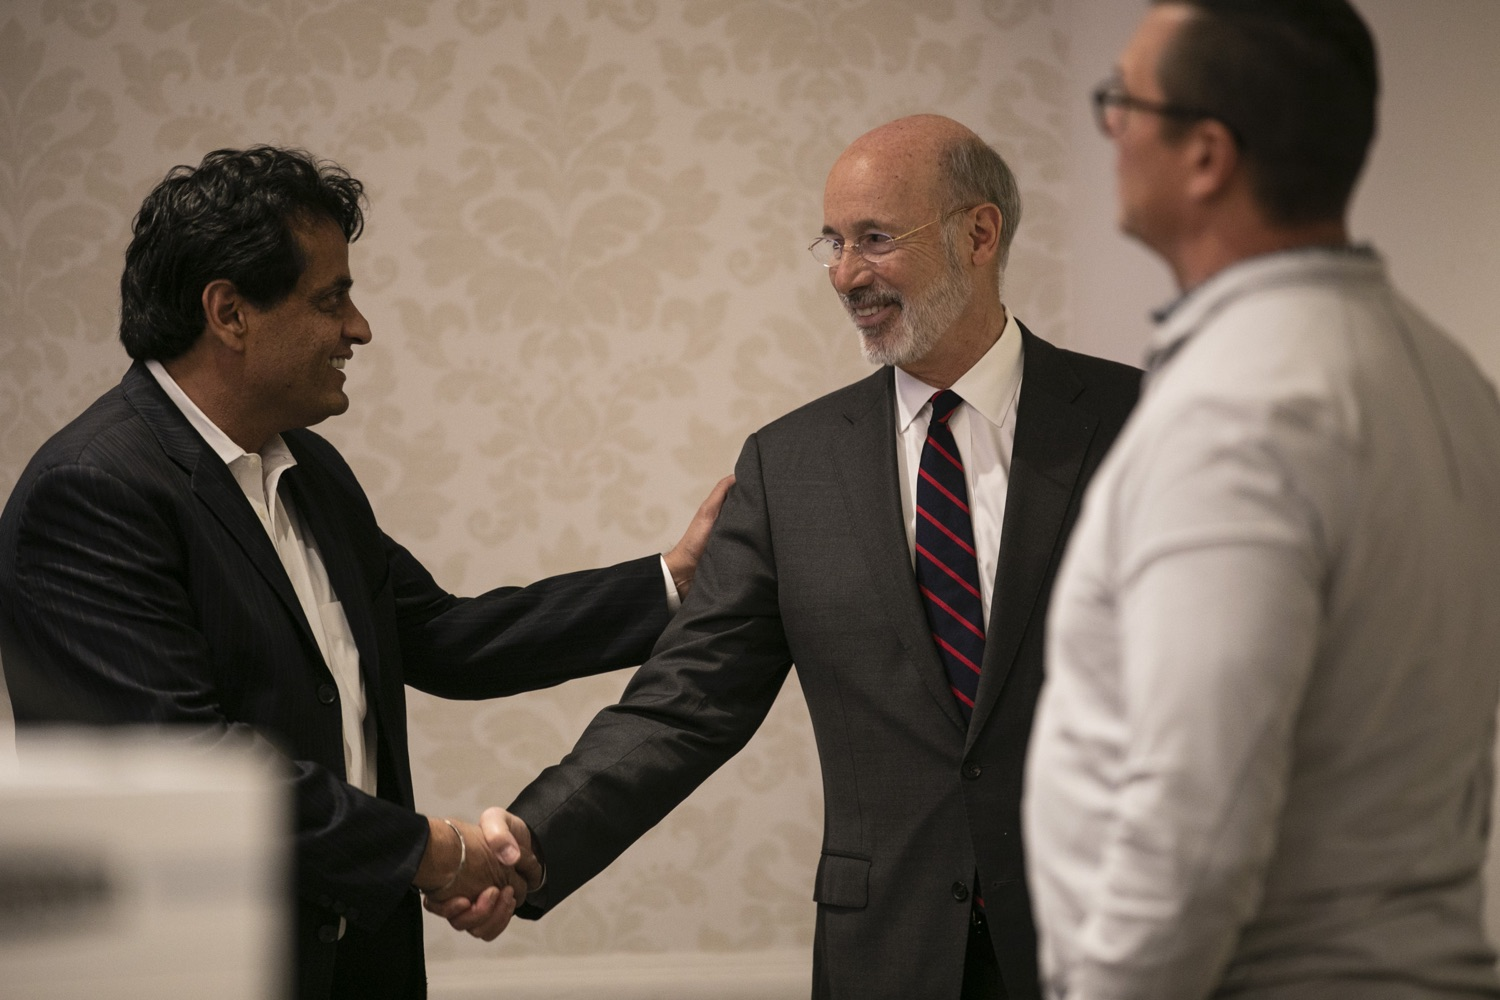 """<a href=""""http://filesource.abacast.com/commonwealthofpa/photo/17575_gov_philly_opioids_amb_002.jpg"""" target=""""_blank"""">⇣Download Photo<br></a>Governor Tom Wolf provides an update on the states progress in battling the opioid epidemic during the Pennsylvania Orthopaedic Societys Fall Meeting and Symposium. Department of Health Secretary Dr. Rachel Levine joined the governor on the opioid panel discussion. November 8, 2019. Philadelphia, PA."""